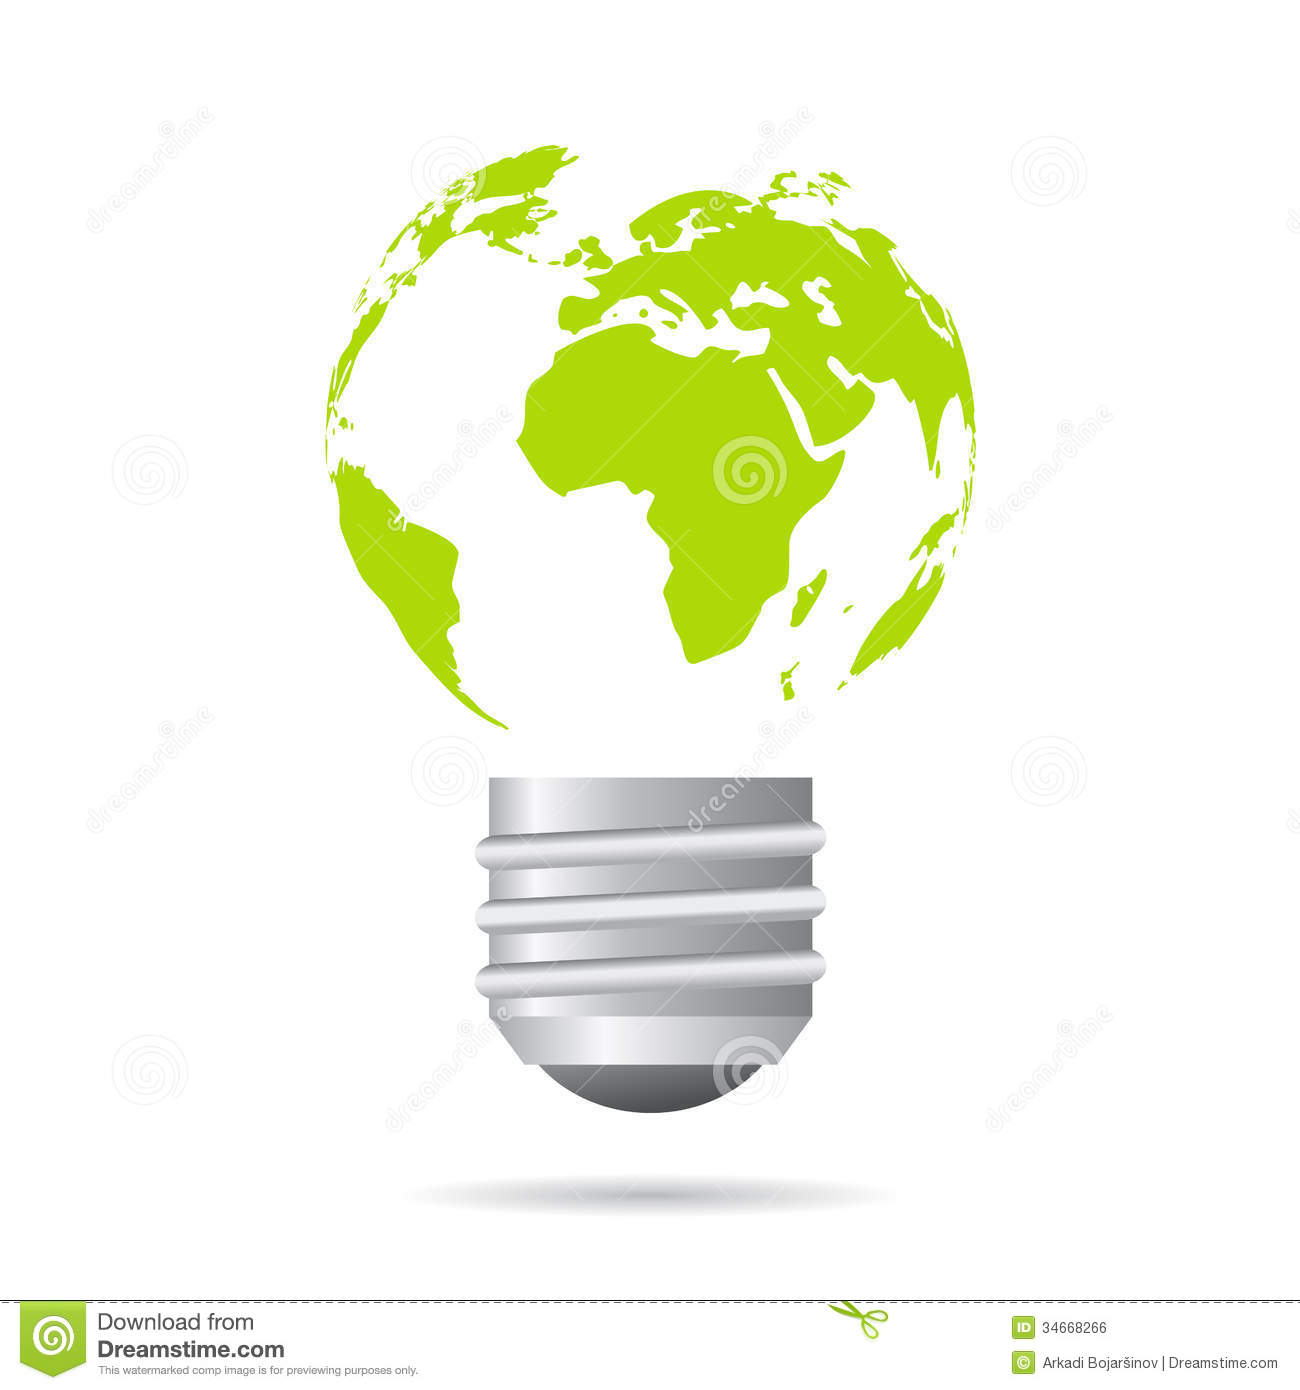 Green Energy Royalty Free Stock Image - Image: 34668266